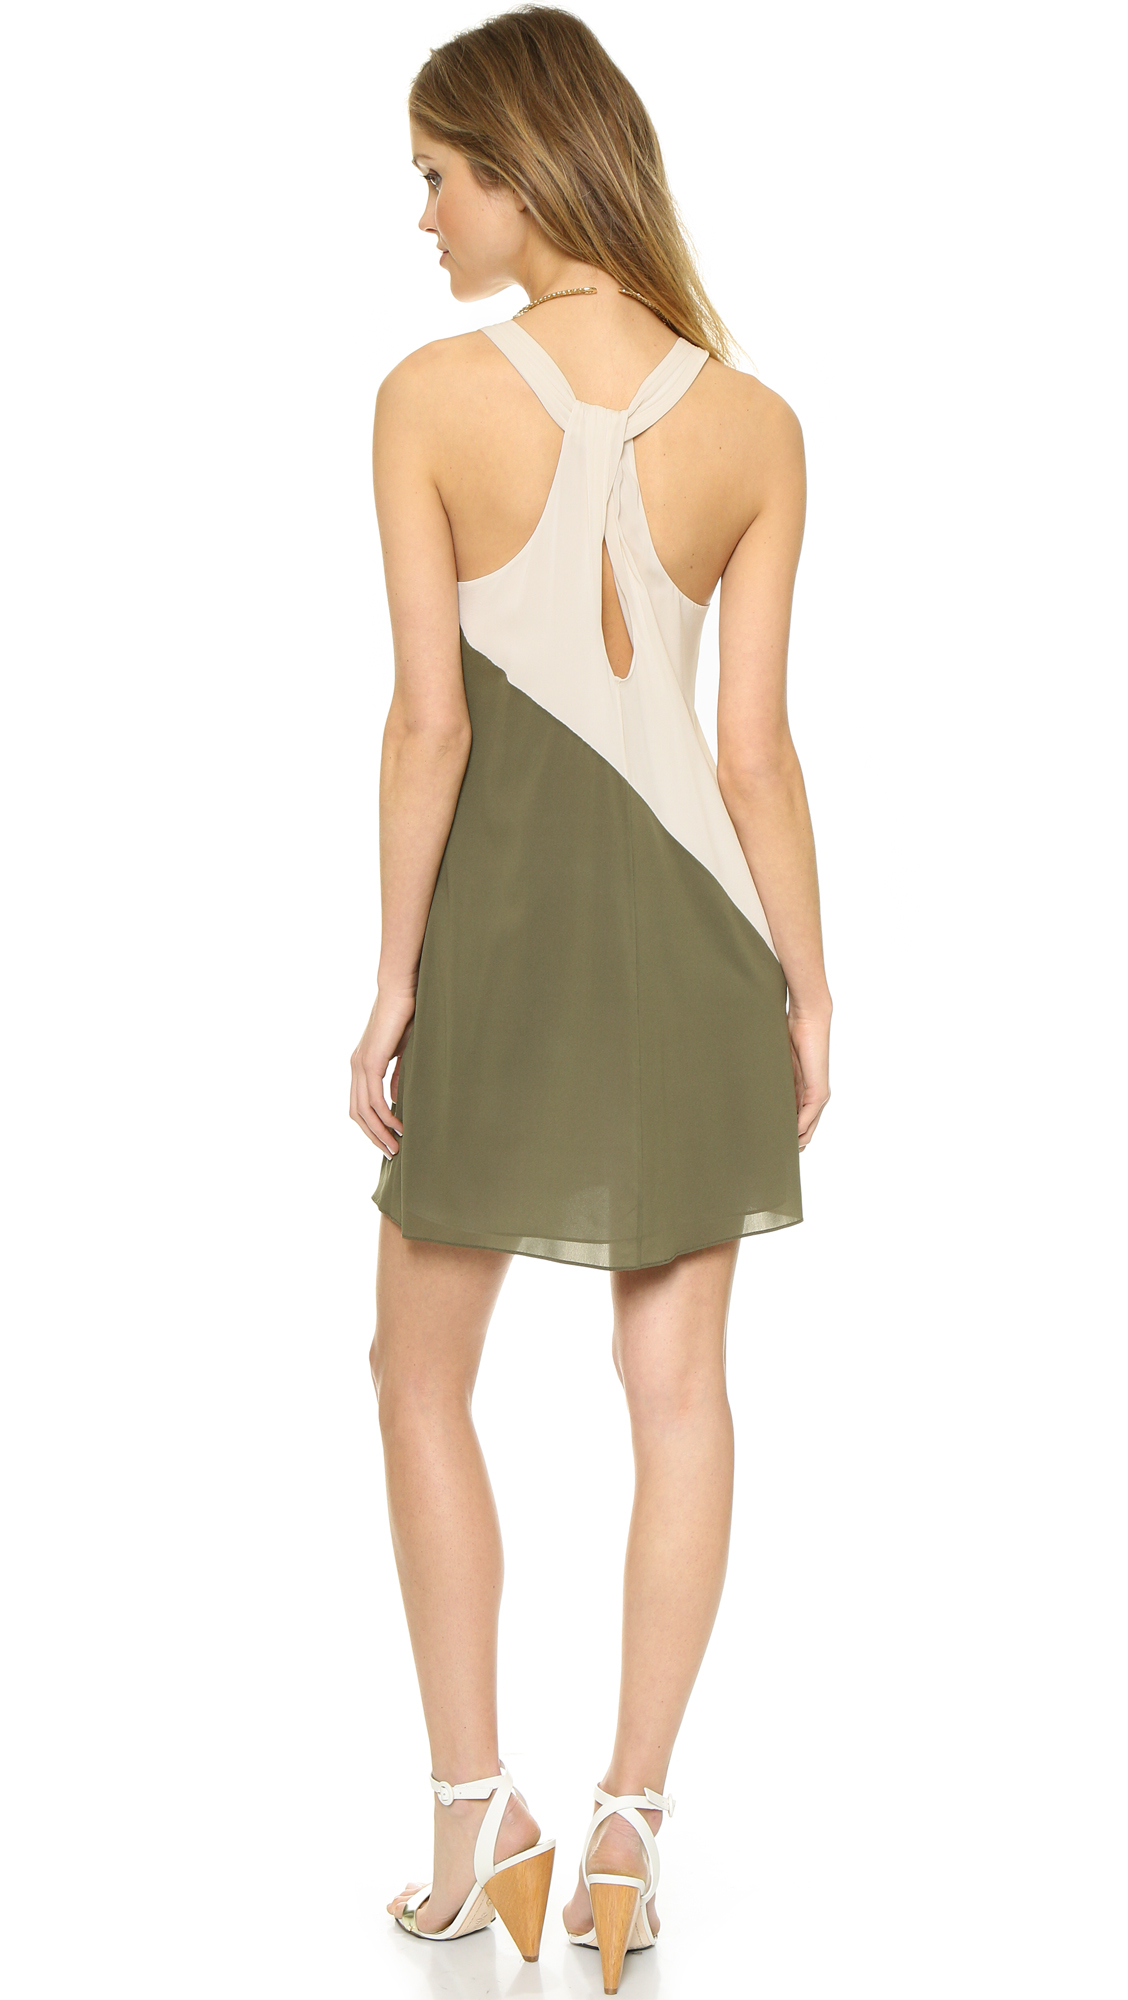 bf50a53ede9ae Alice + Olivia Marion Twist Back Dress - Cream/olive in Green - Lyst